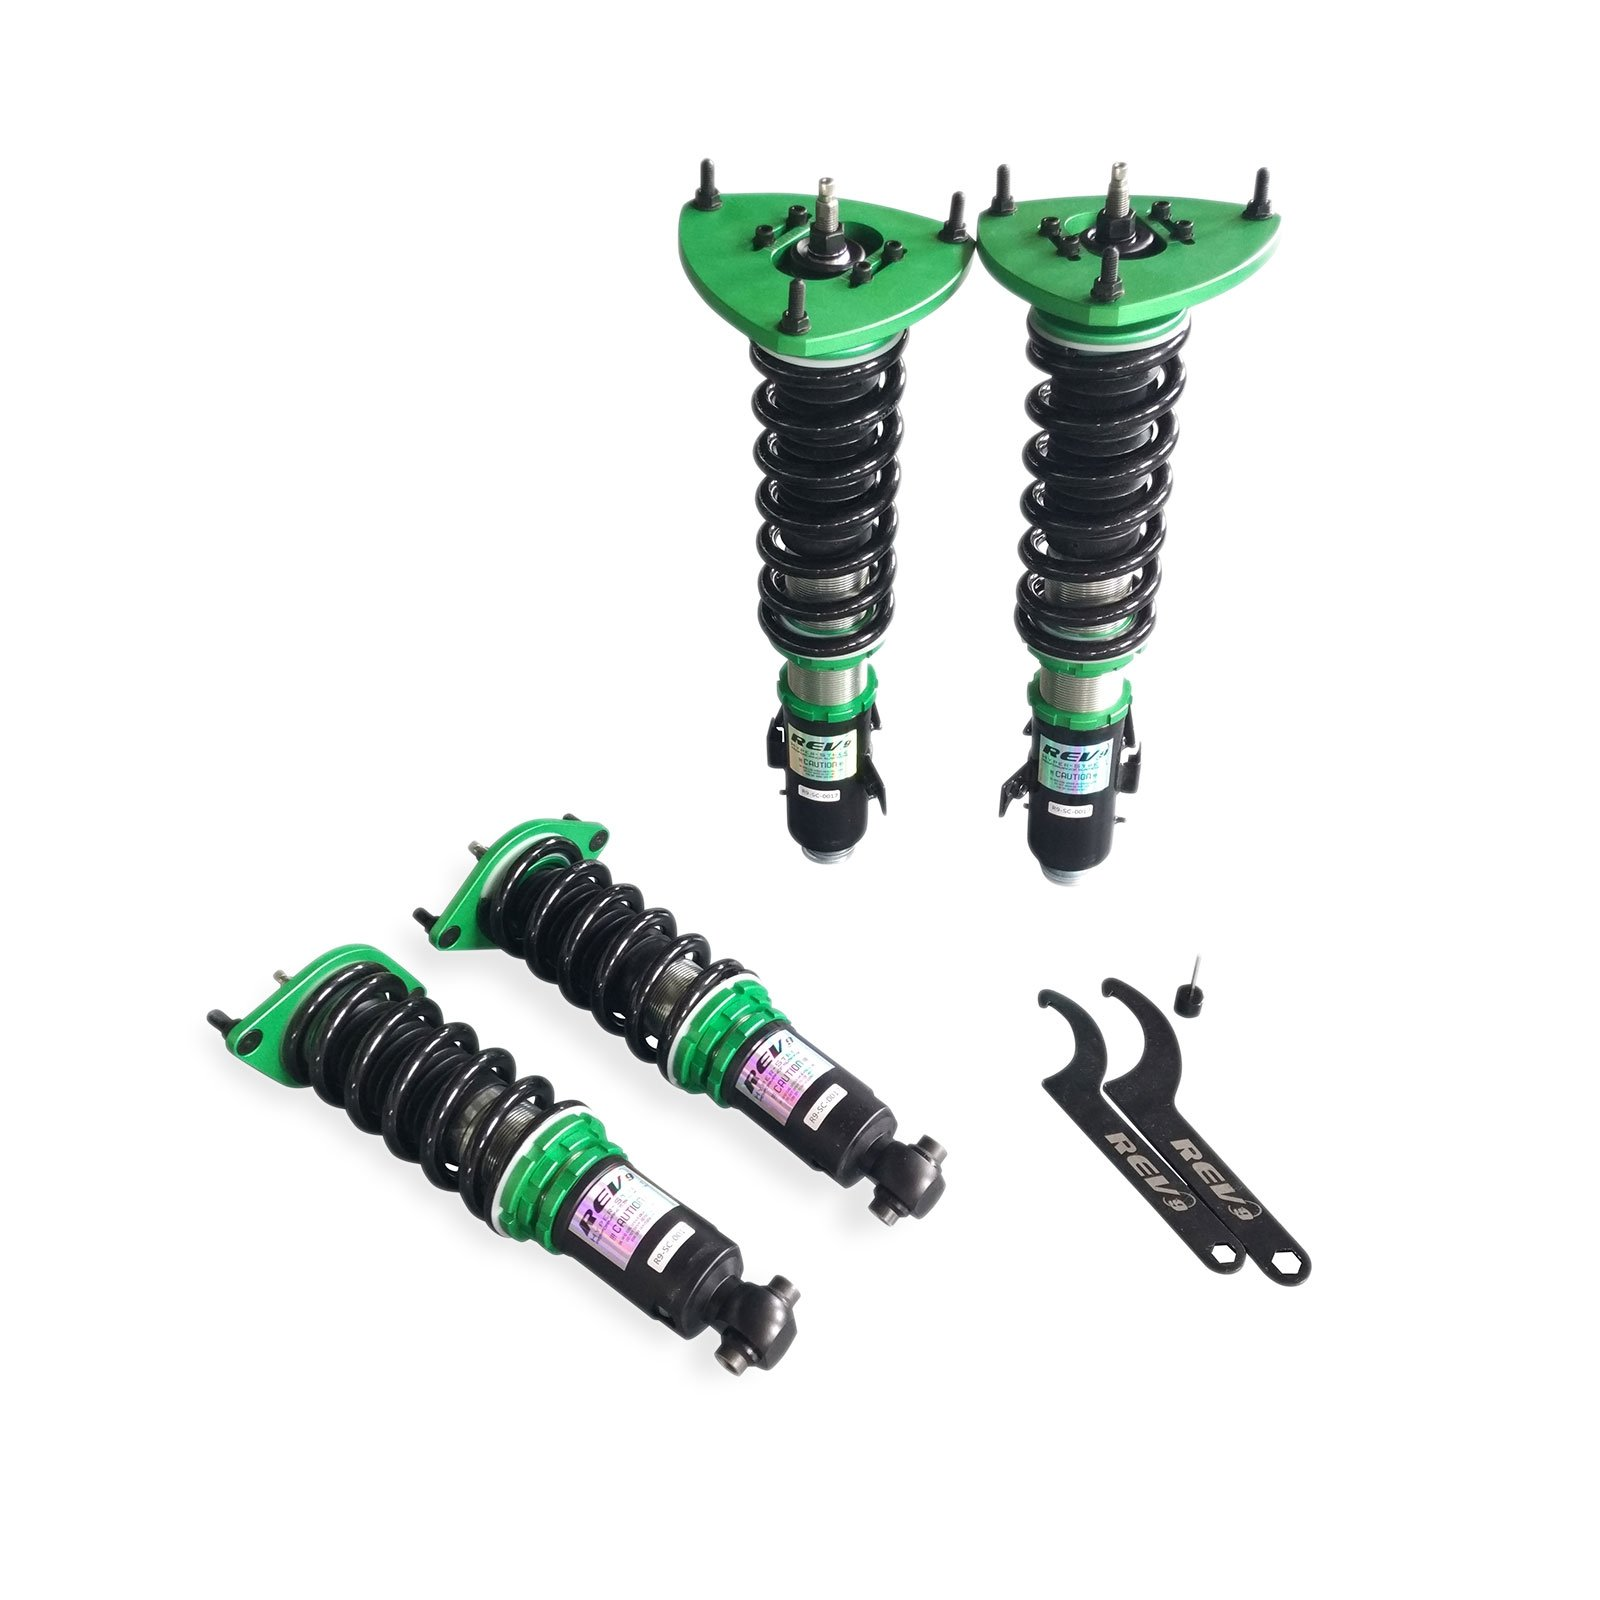 Rev9(R9-SC-0017) Hyper-Street Coilovers For Subaru Impreza WRX 2008-14, Twin Tube, Height/Dampening Adjustable